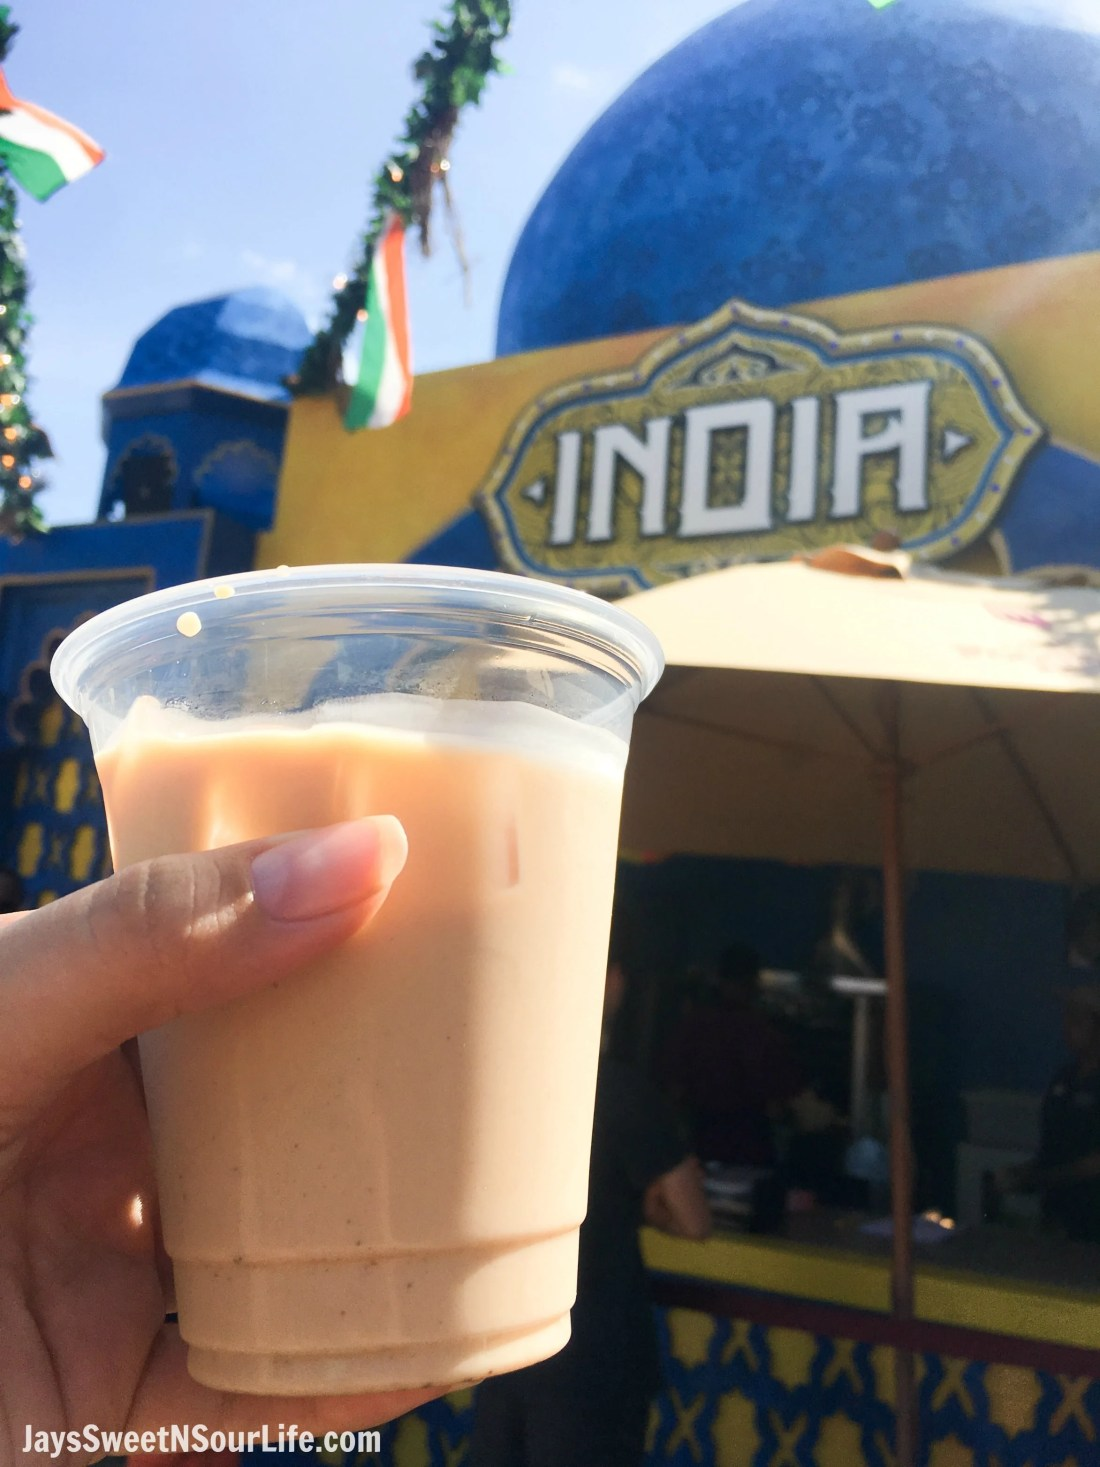 Masala Chai Iced Tea 2018 Busch Gardens Food and Wine Festival. Food & Wine Festival is from 11 am to close every Friday, Saturday and Sunday, May 25 - July 1.